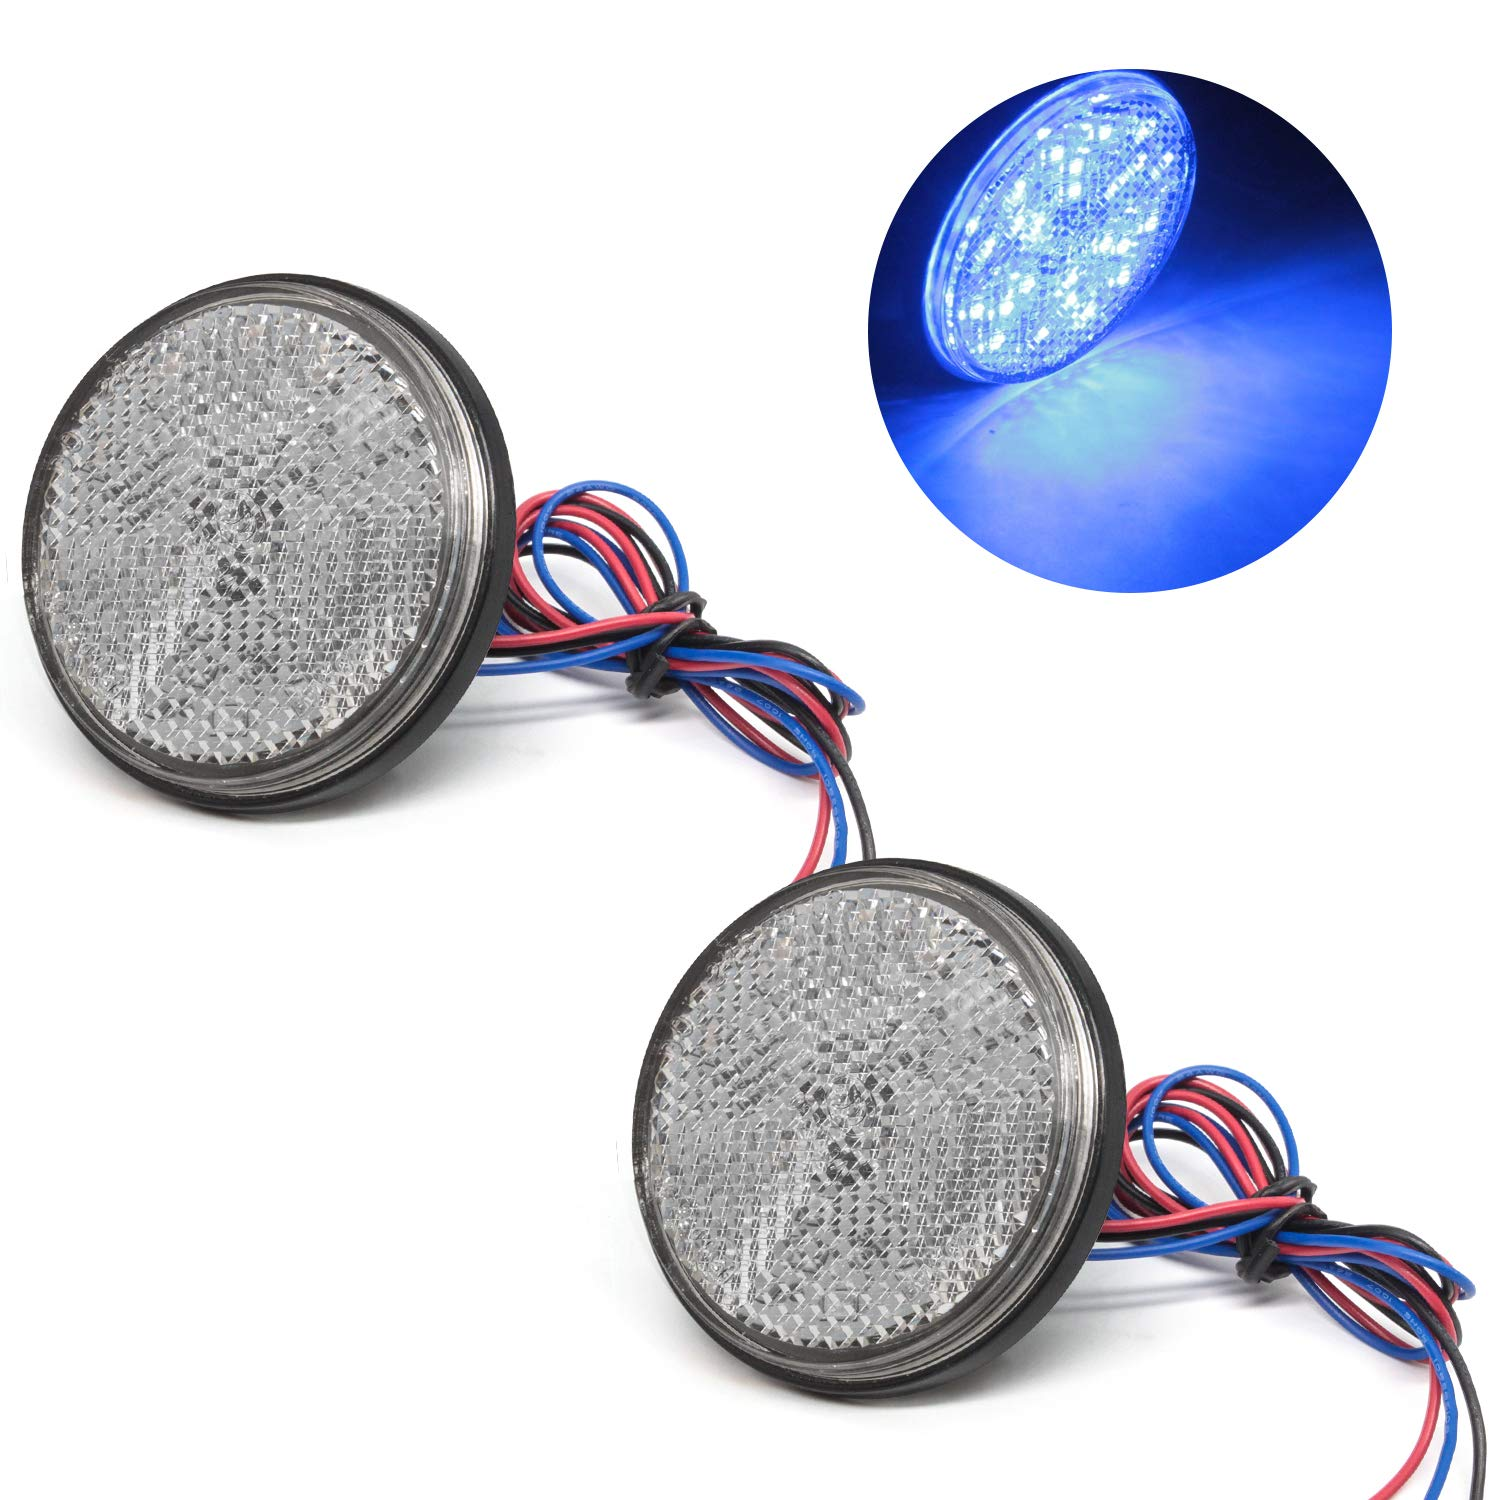 2Pcs-Blue Motorcycle Turn Signal Light 12V Round 24SMD Auxiliary Driving Lights for Harley BMW Davidson Heritage Softail Yamaha Suzuki Car Truck LED Reflector Tail Brake Stop Lights